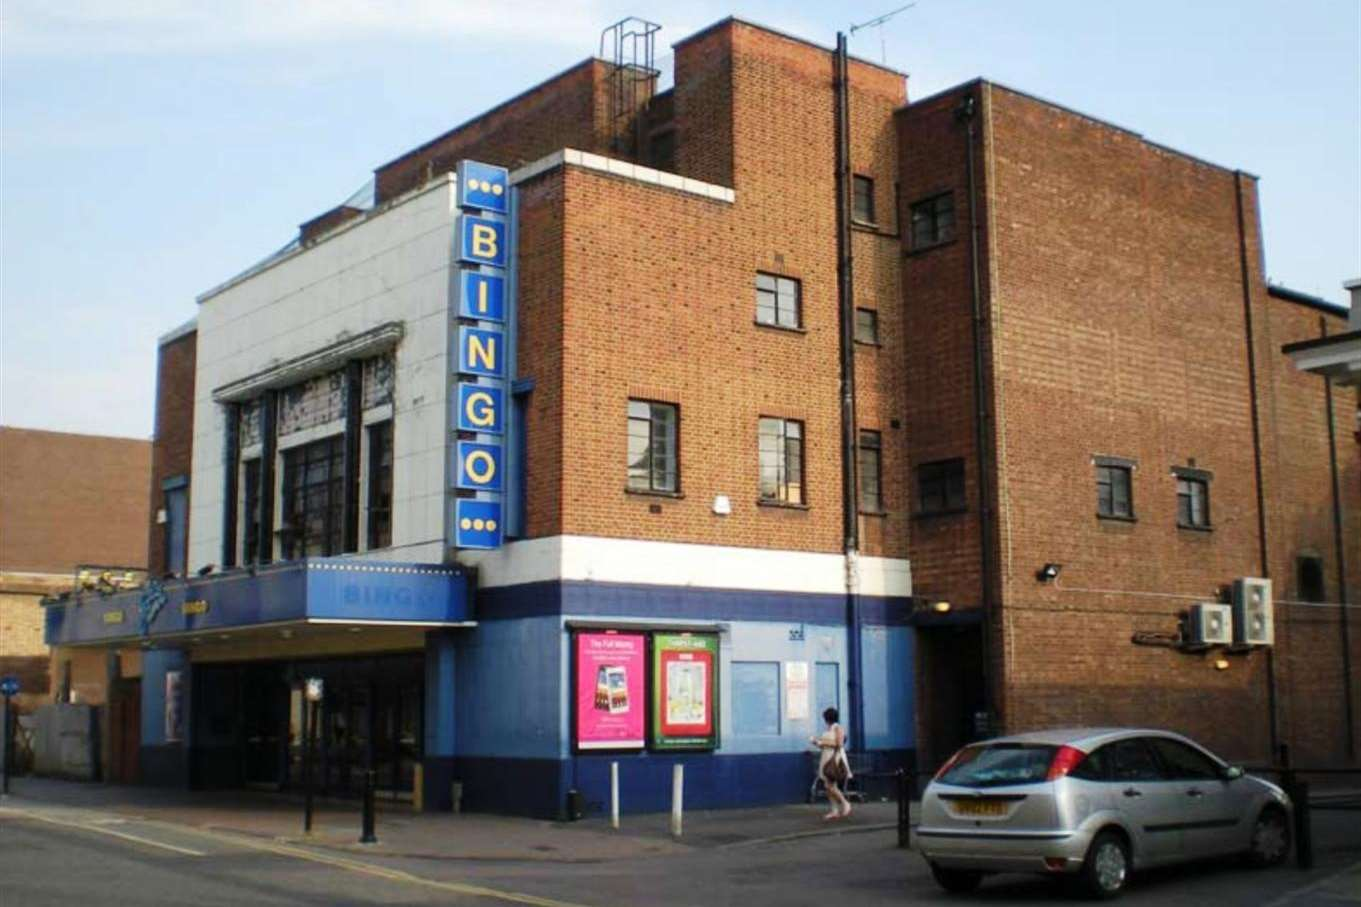 The Gala Bingo site in Dartford has been put up for sale - and is being marketed by a company which specialises in churches and places of worship.